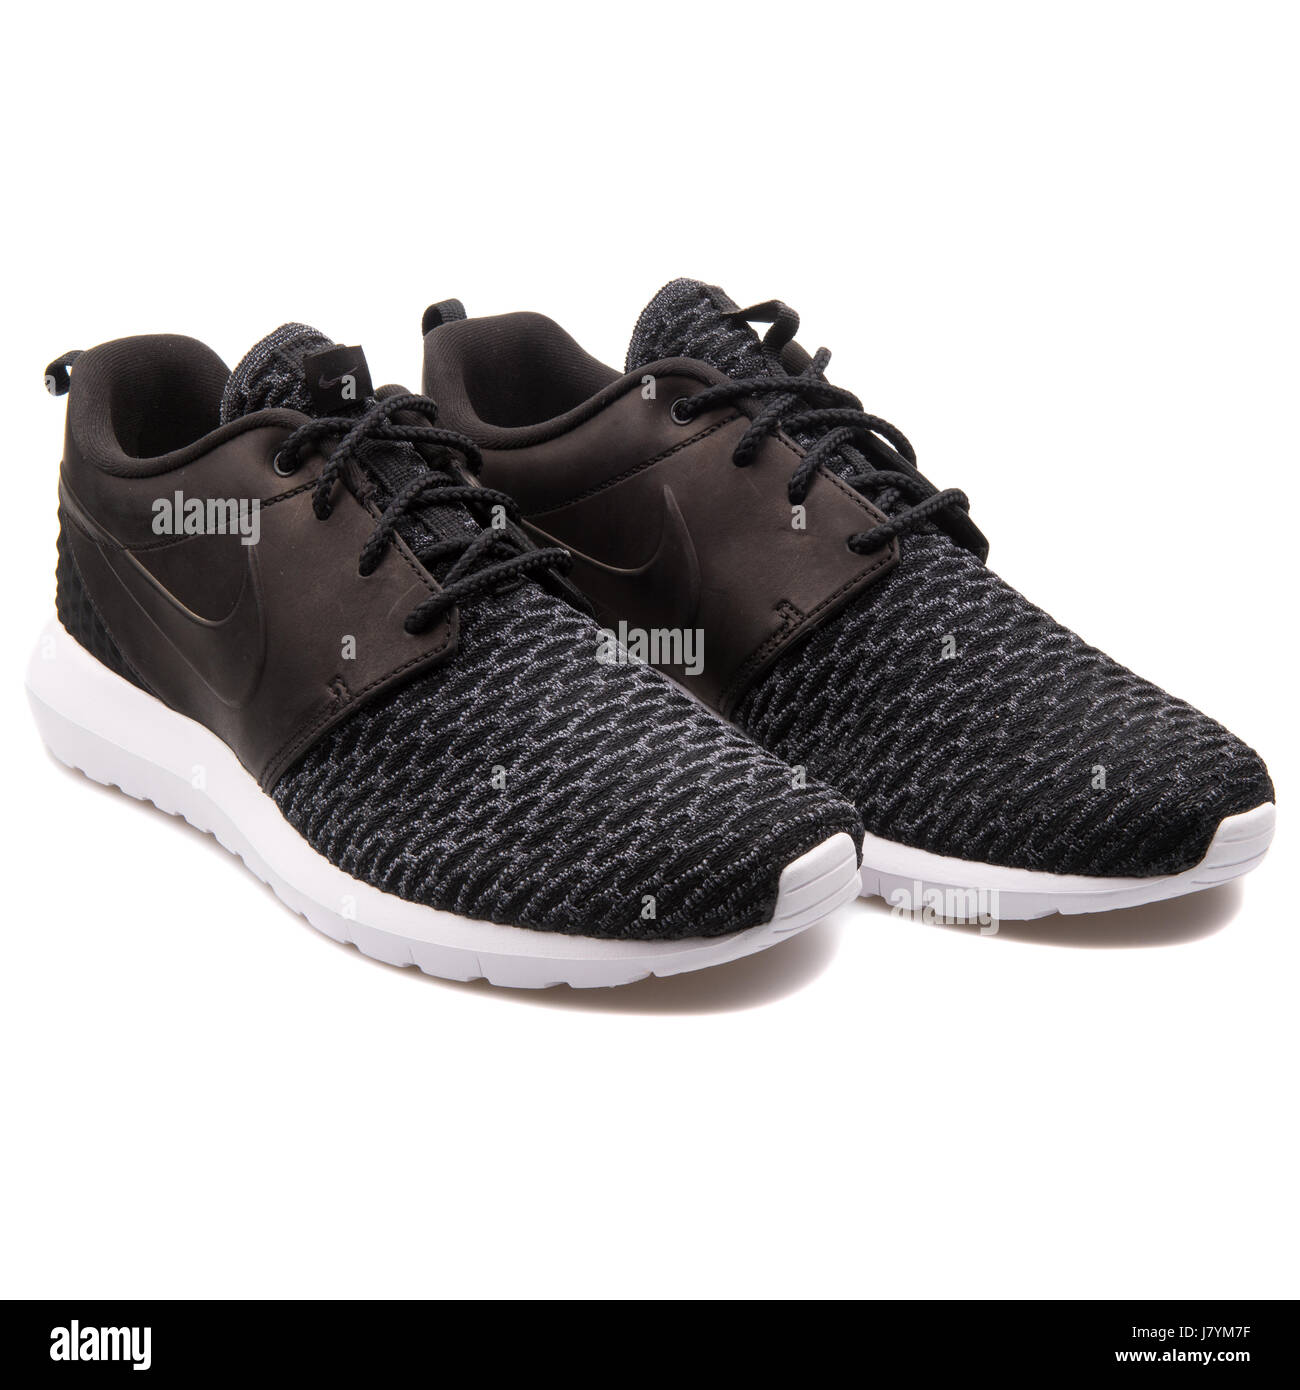 low priced 81430 dedcc Nike Roshe NM Flyknit PRM Black Unisex Sports Sneakers - 746825-001